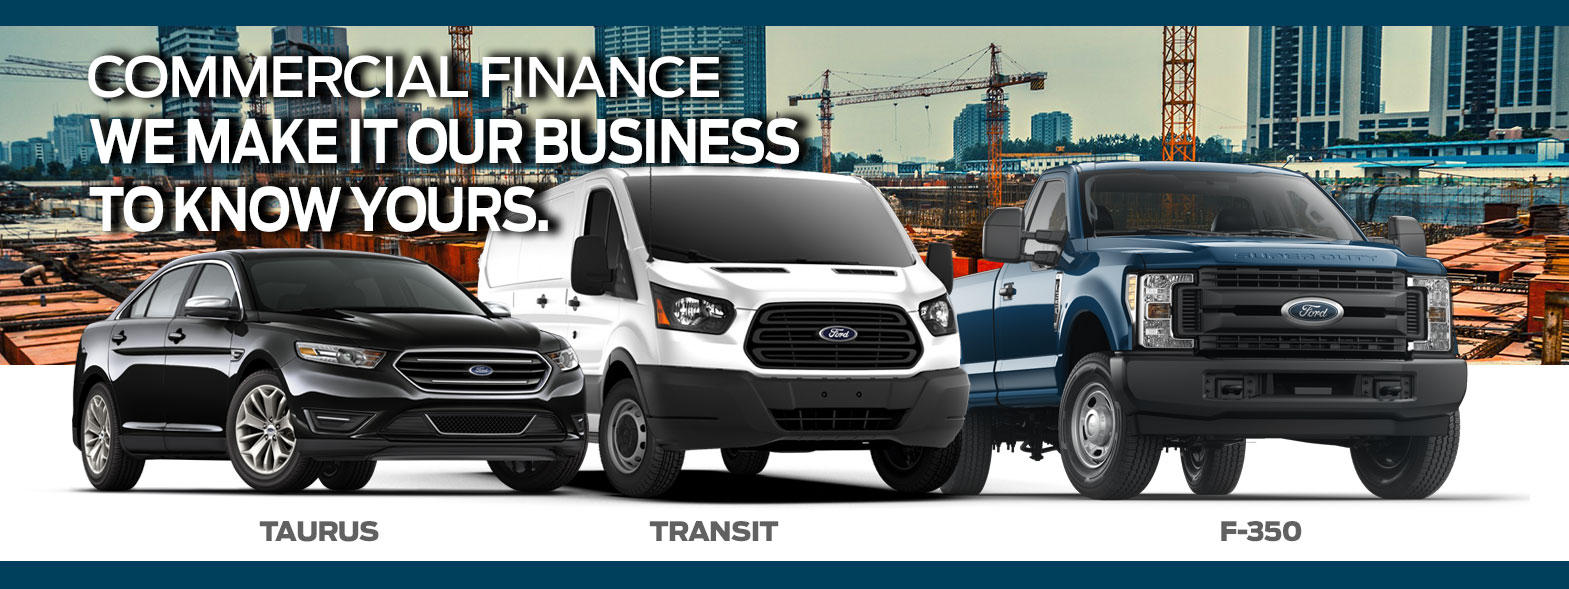 bc677f2c32 Commercial Finance and Lease